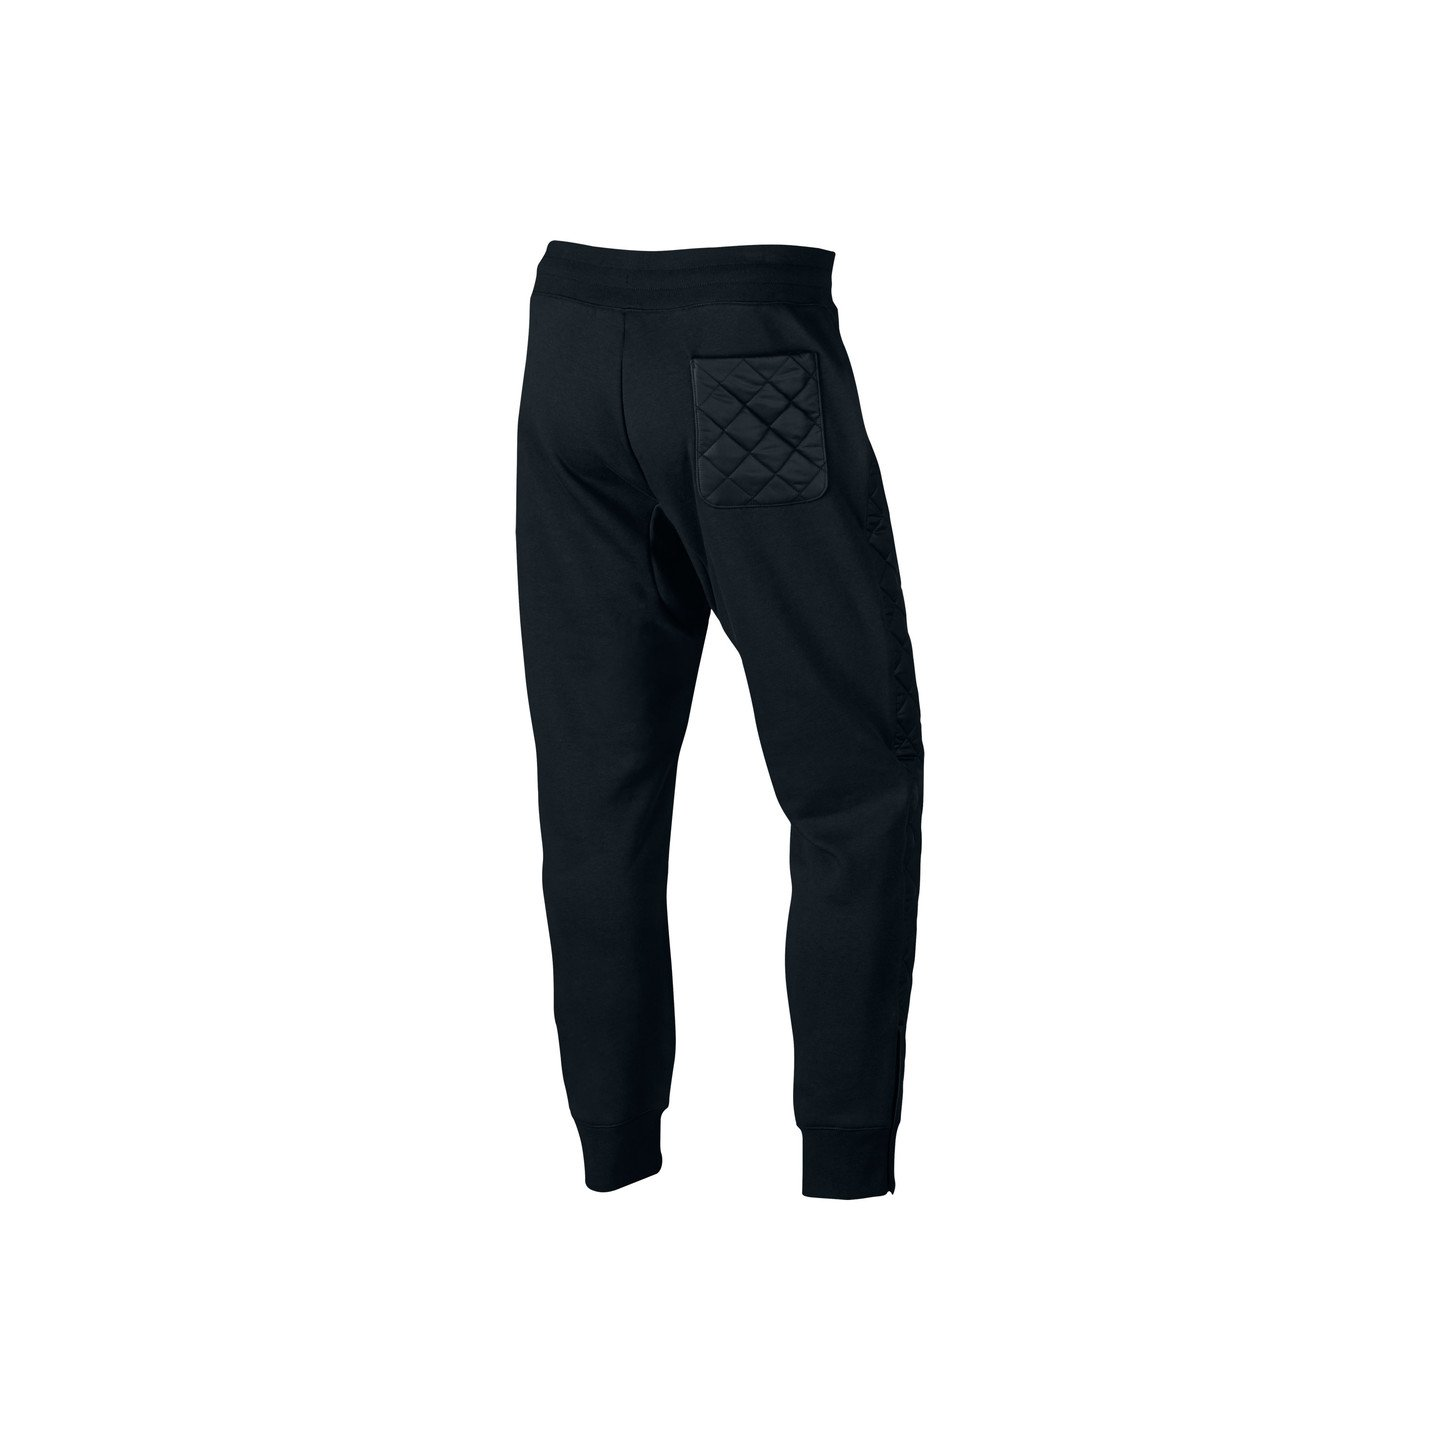 Nike Fleece Cuffed Winterized Pants V442 Black 678942-010-xl